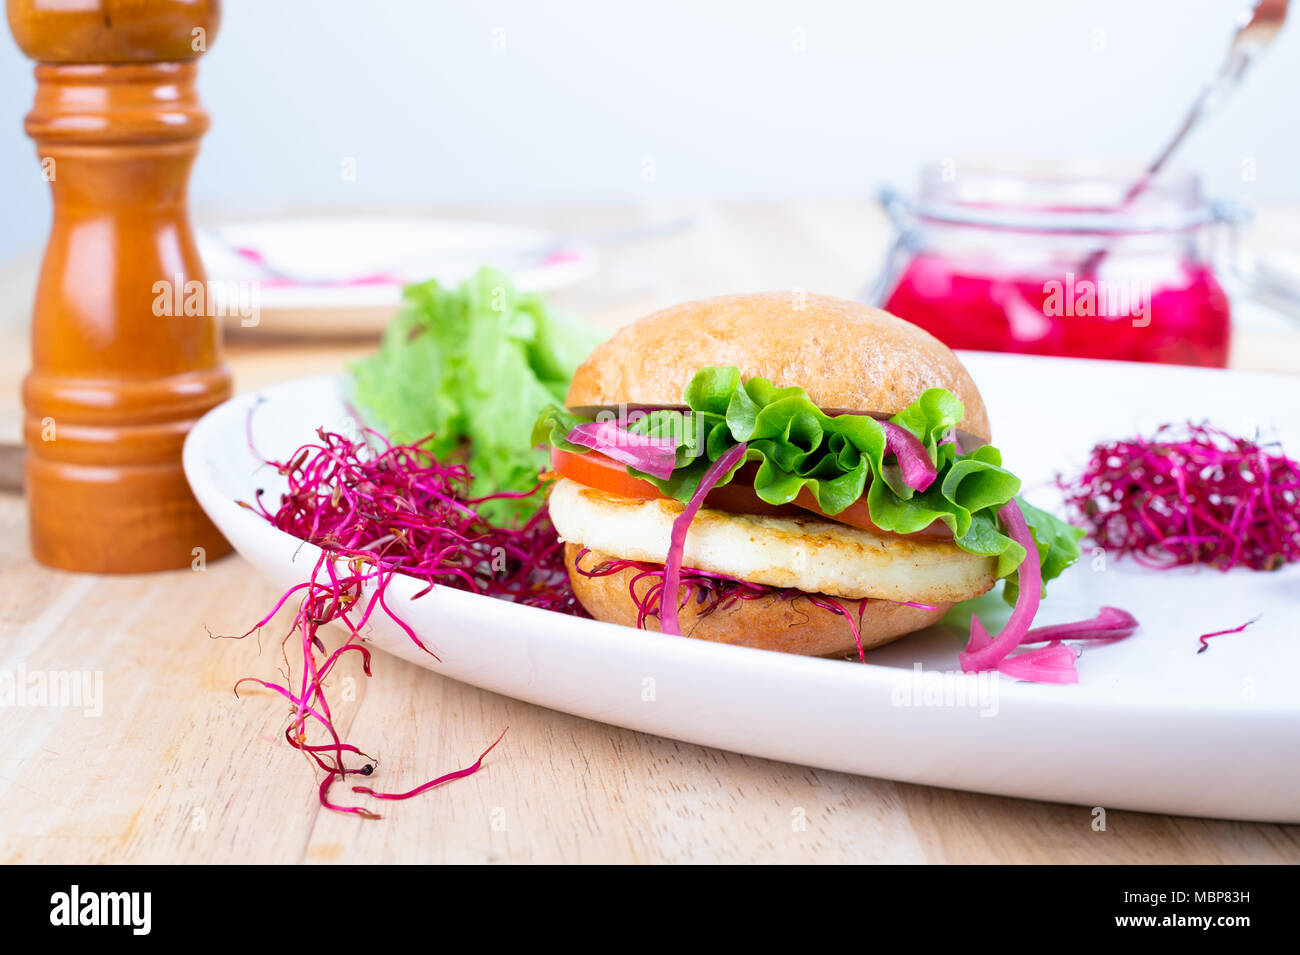 Halloumi burger with lettuce, tomato, pickled red onion and beet sprouts. - Stock Image